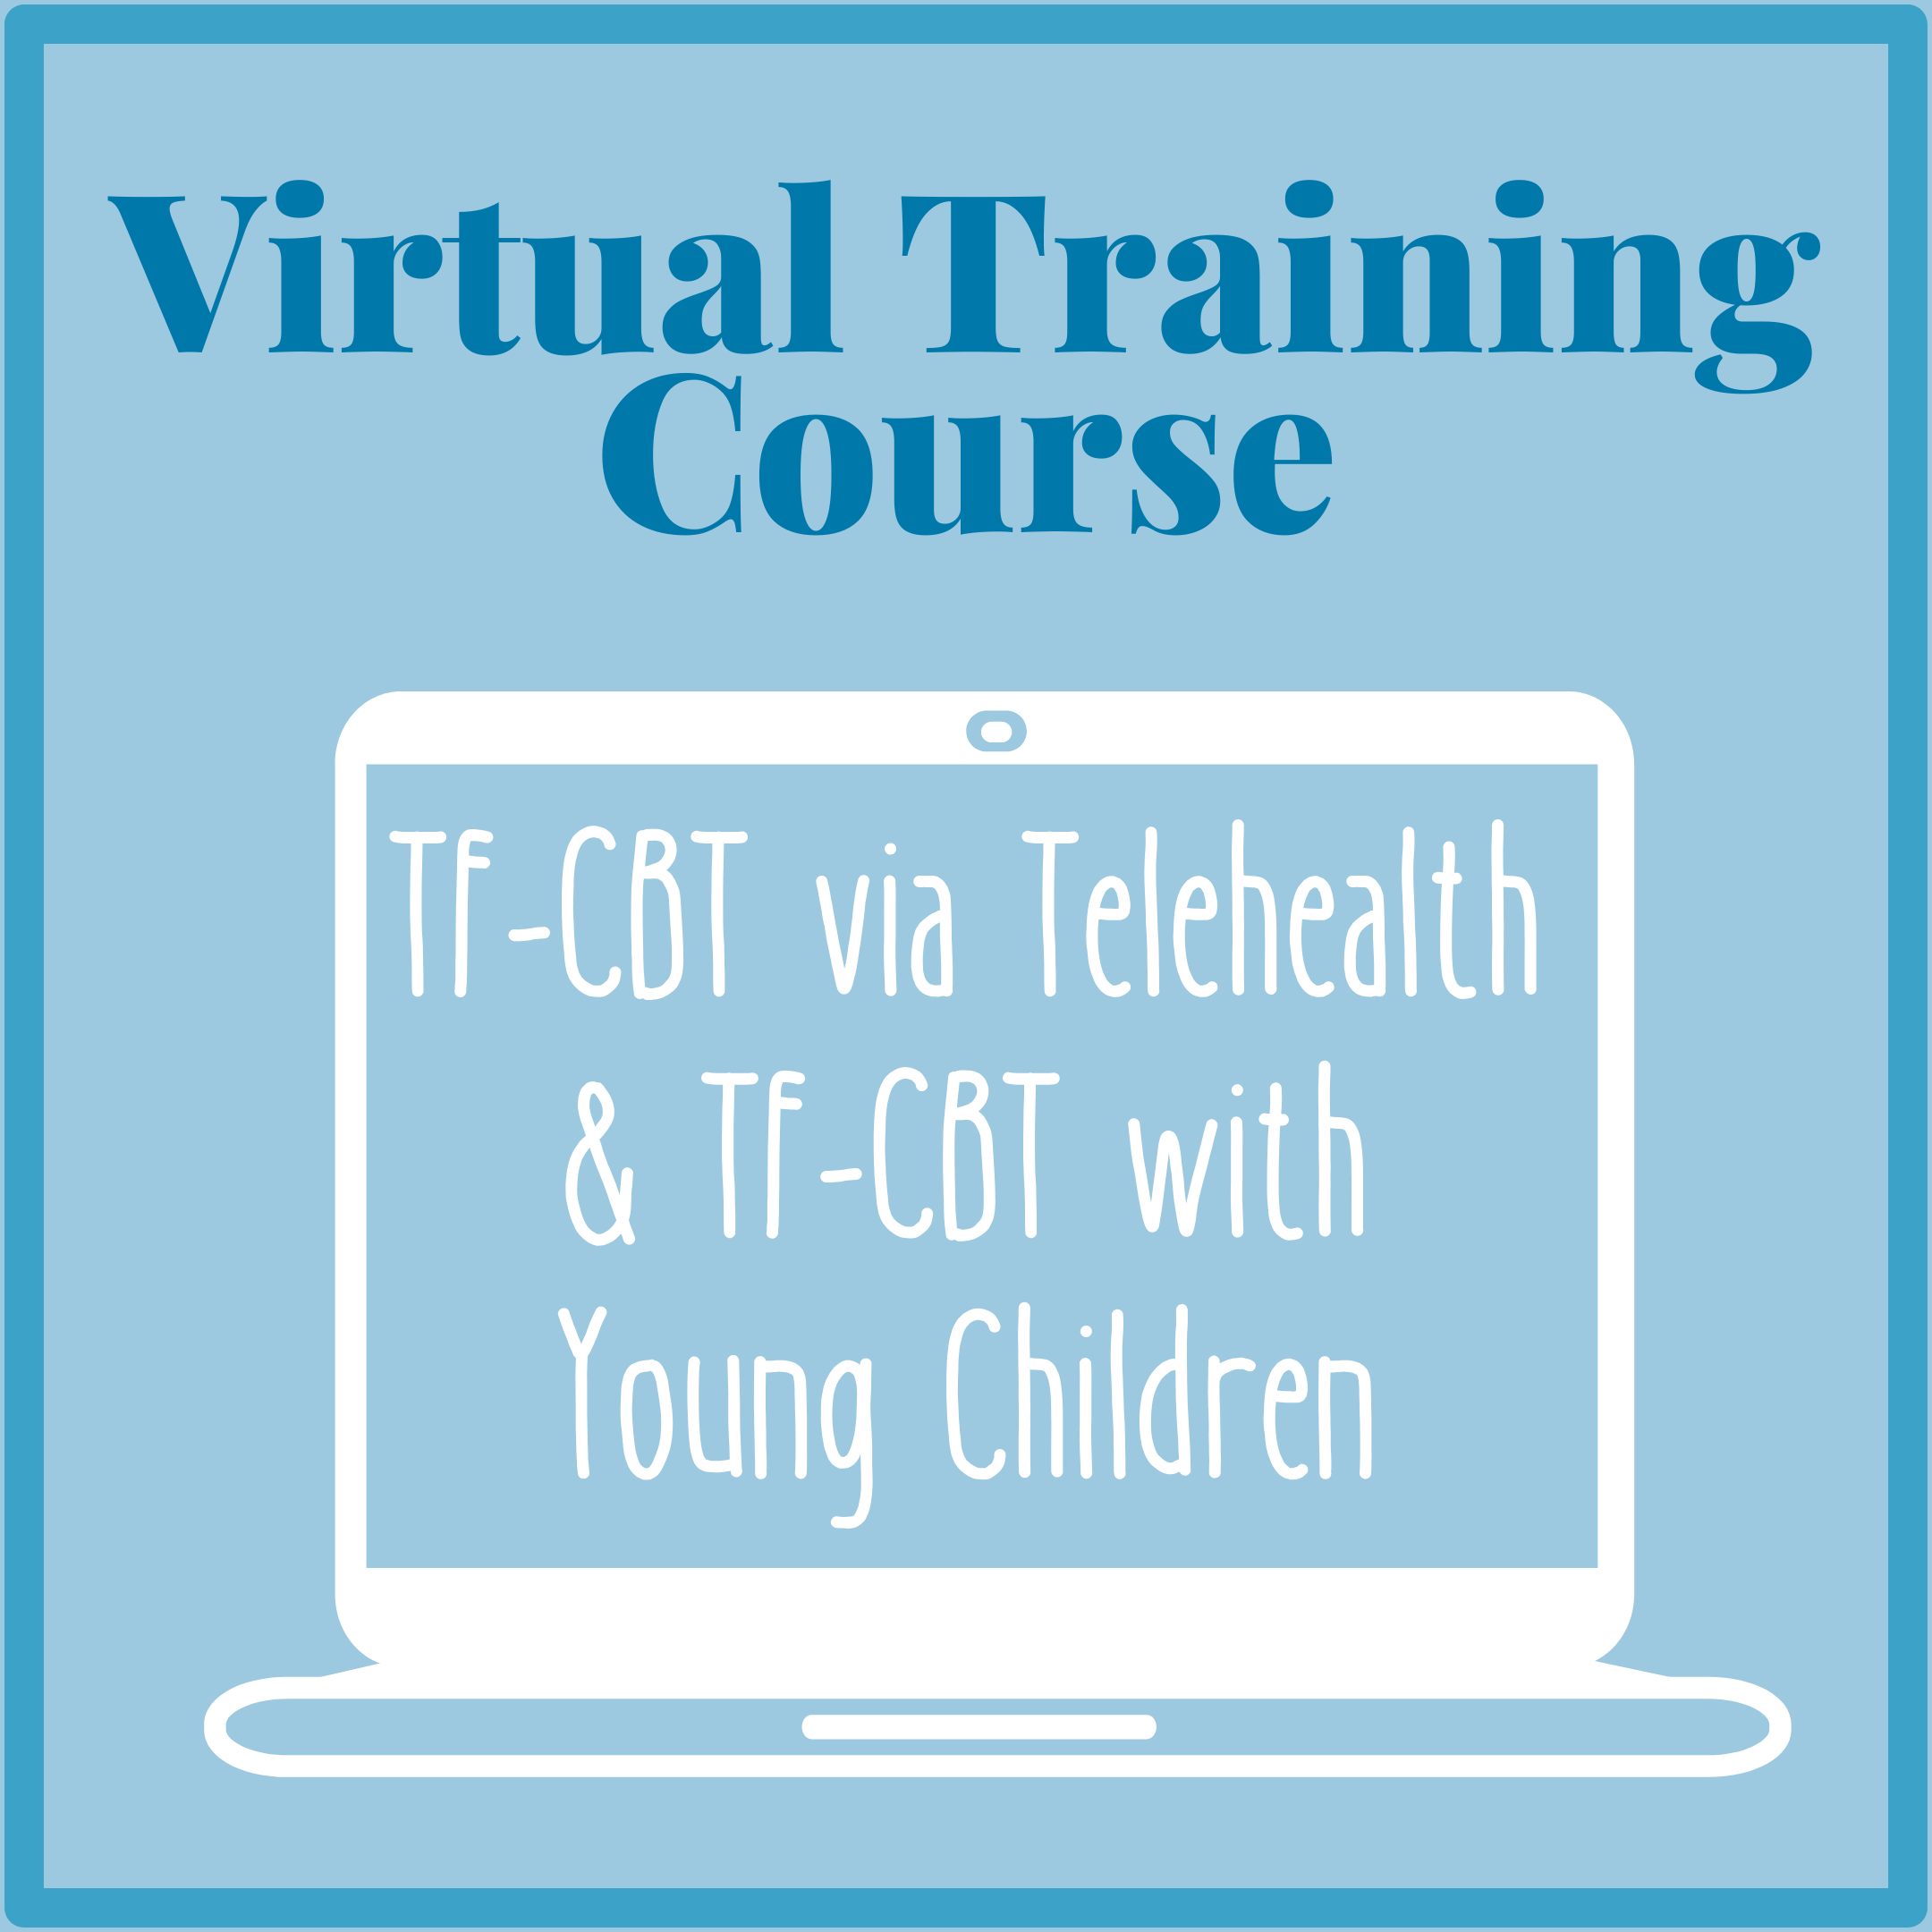 Virtual Training Course - TF-CBT via Telehealth and TF-CBT with Young Children